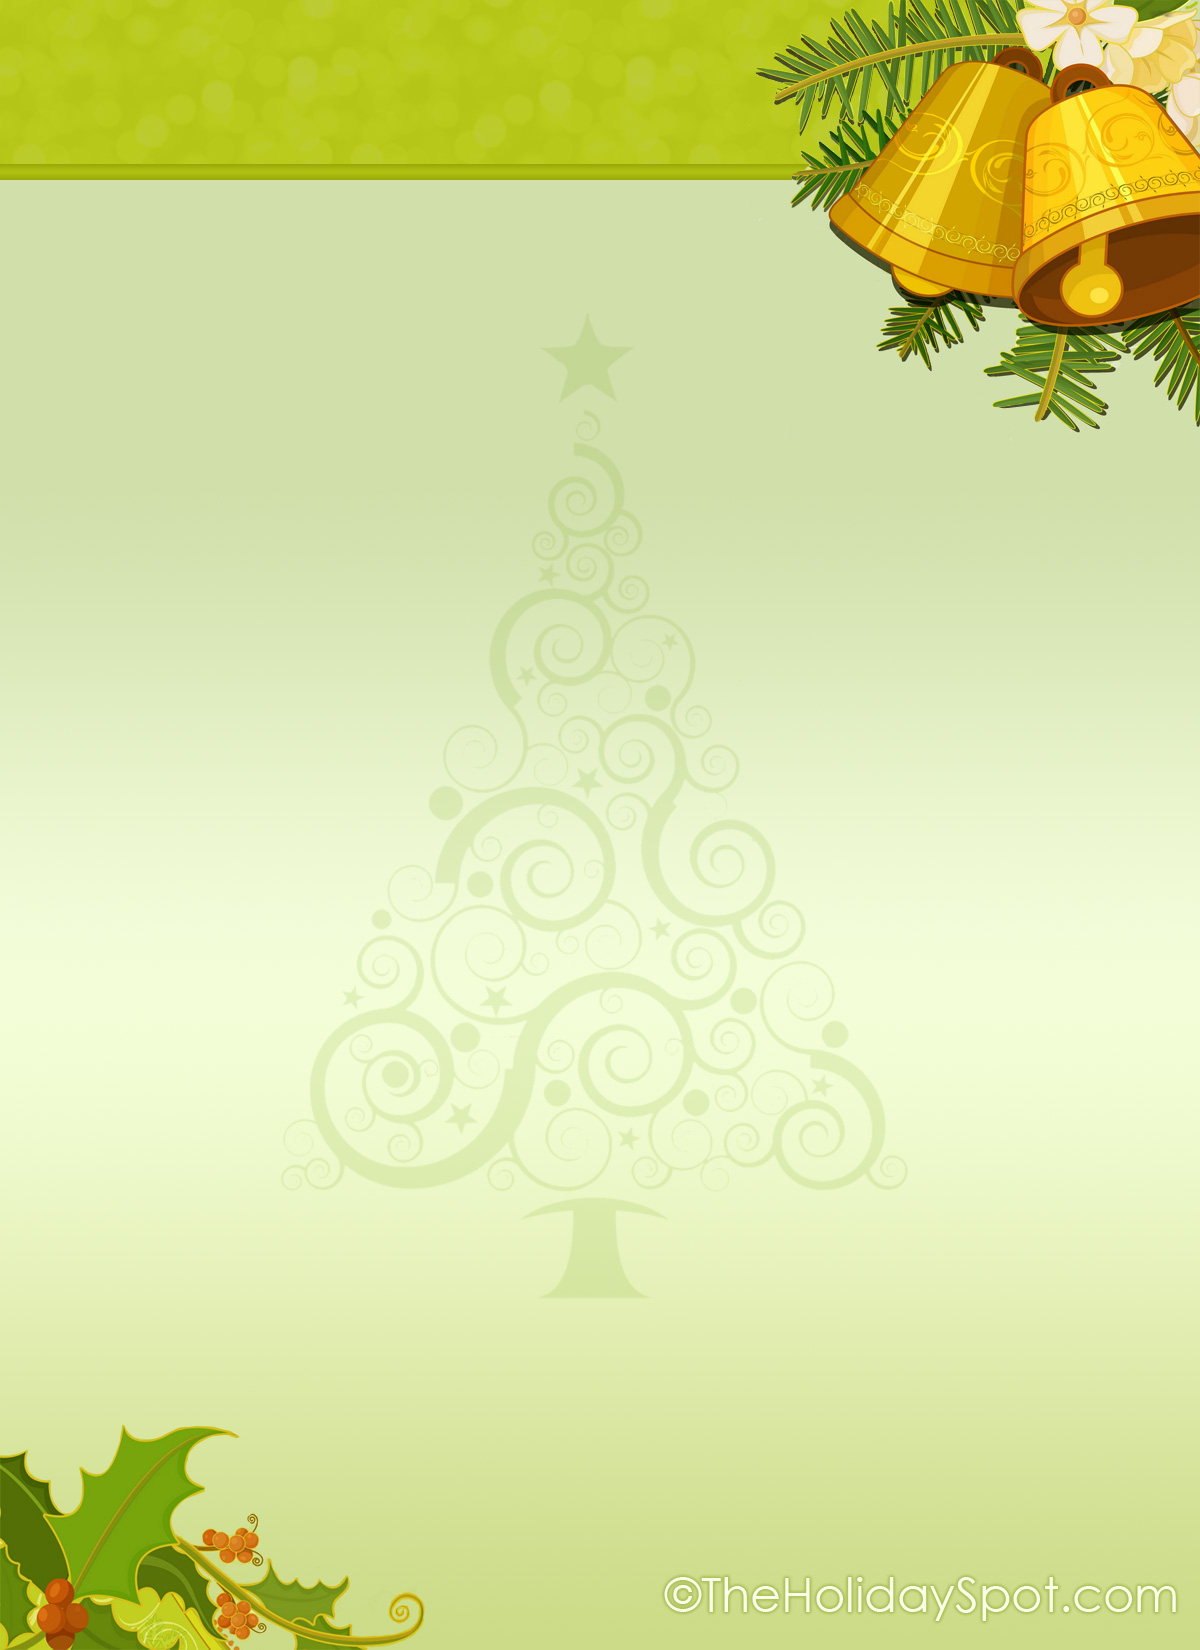 Christmas letter backgrounds for free acurnamedia christmas printouts stationery and letterheads spiritdancerdesigns Images